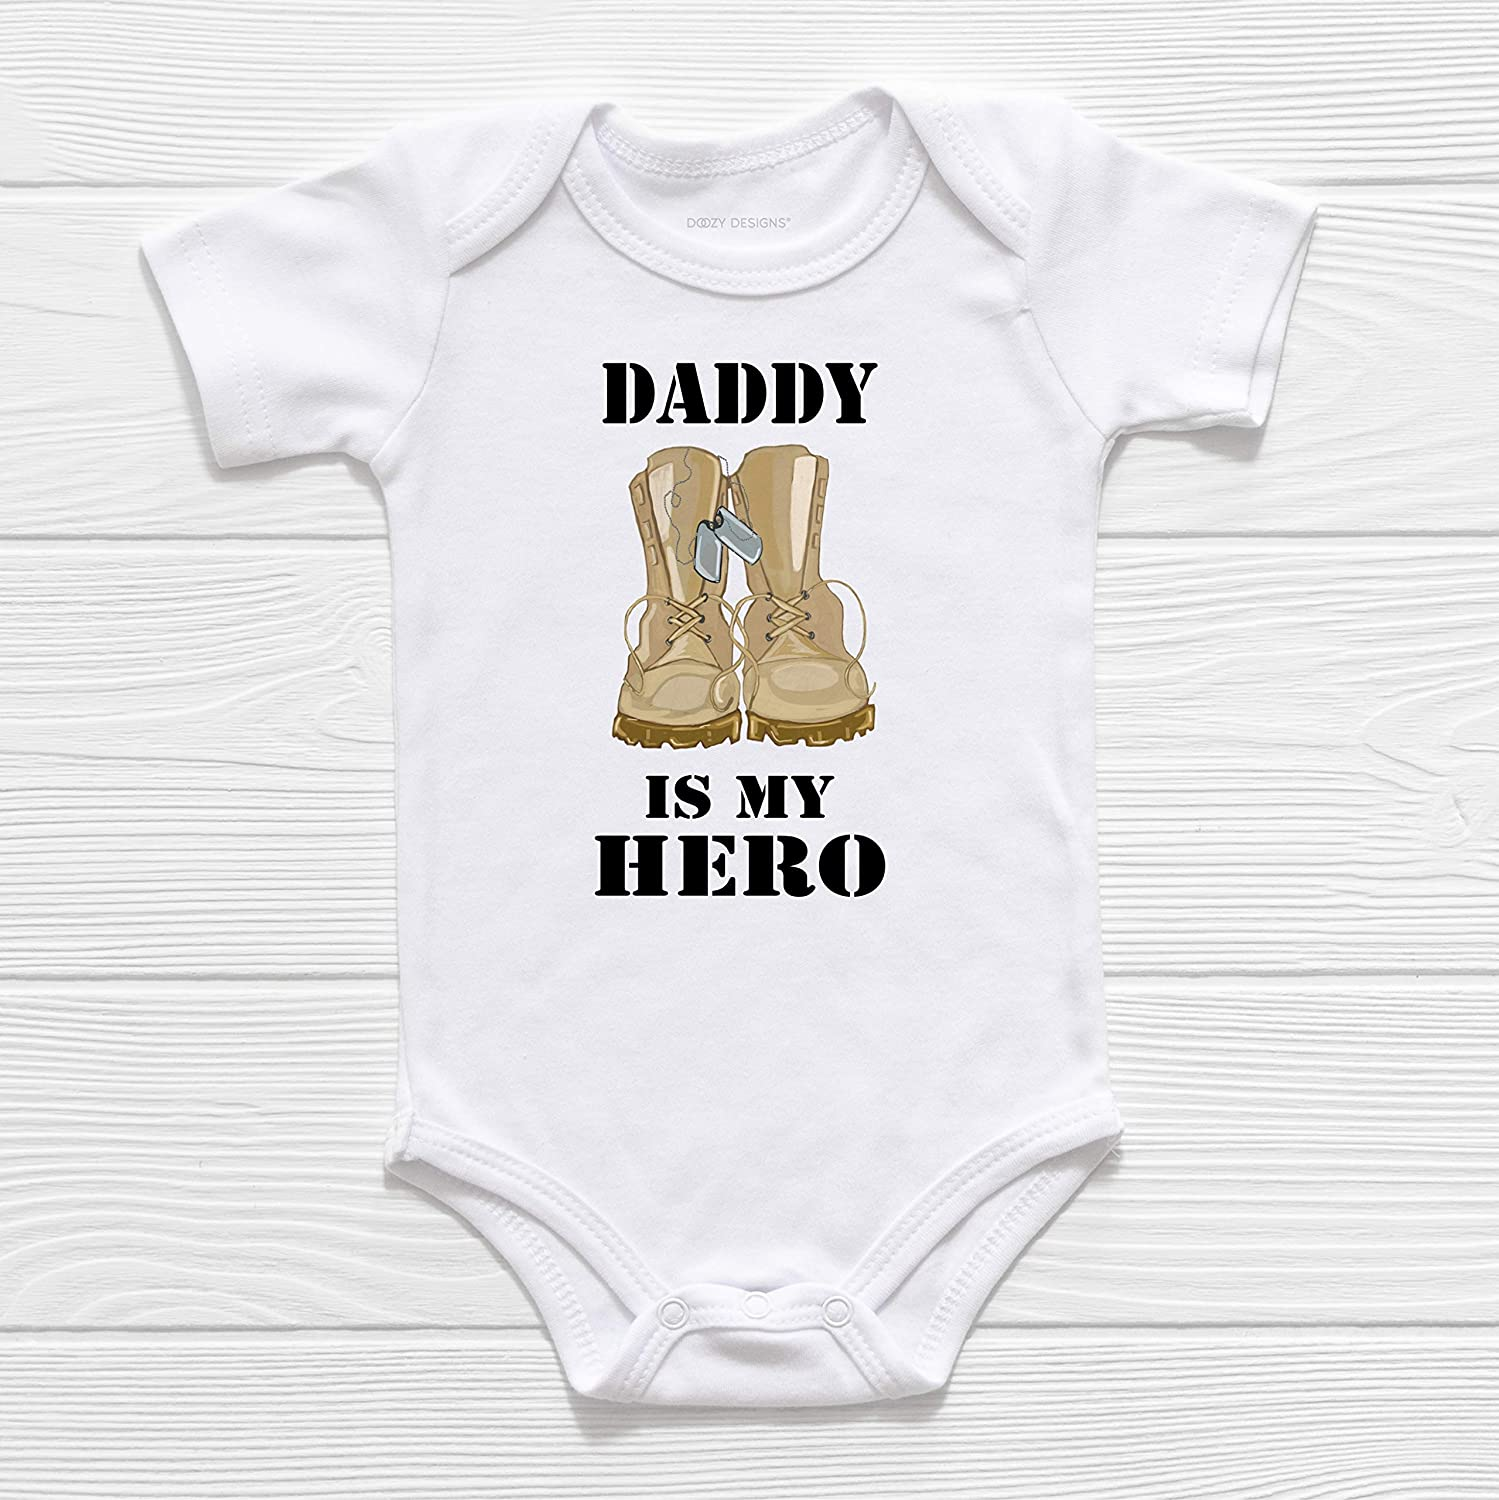 I Get My Good Looks From My Daddy Baby Vest Romper Babygrow Baby Shower Gifts